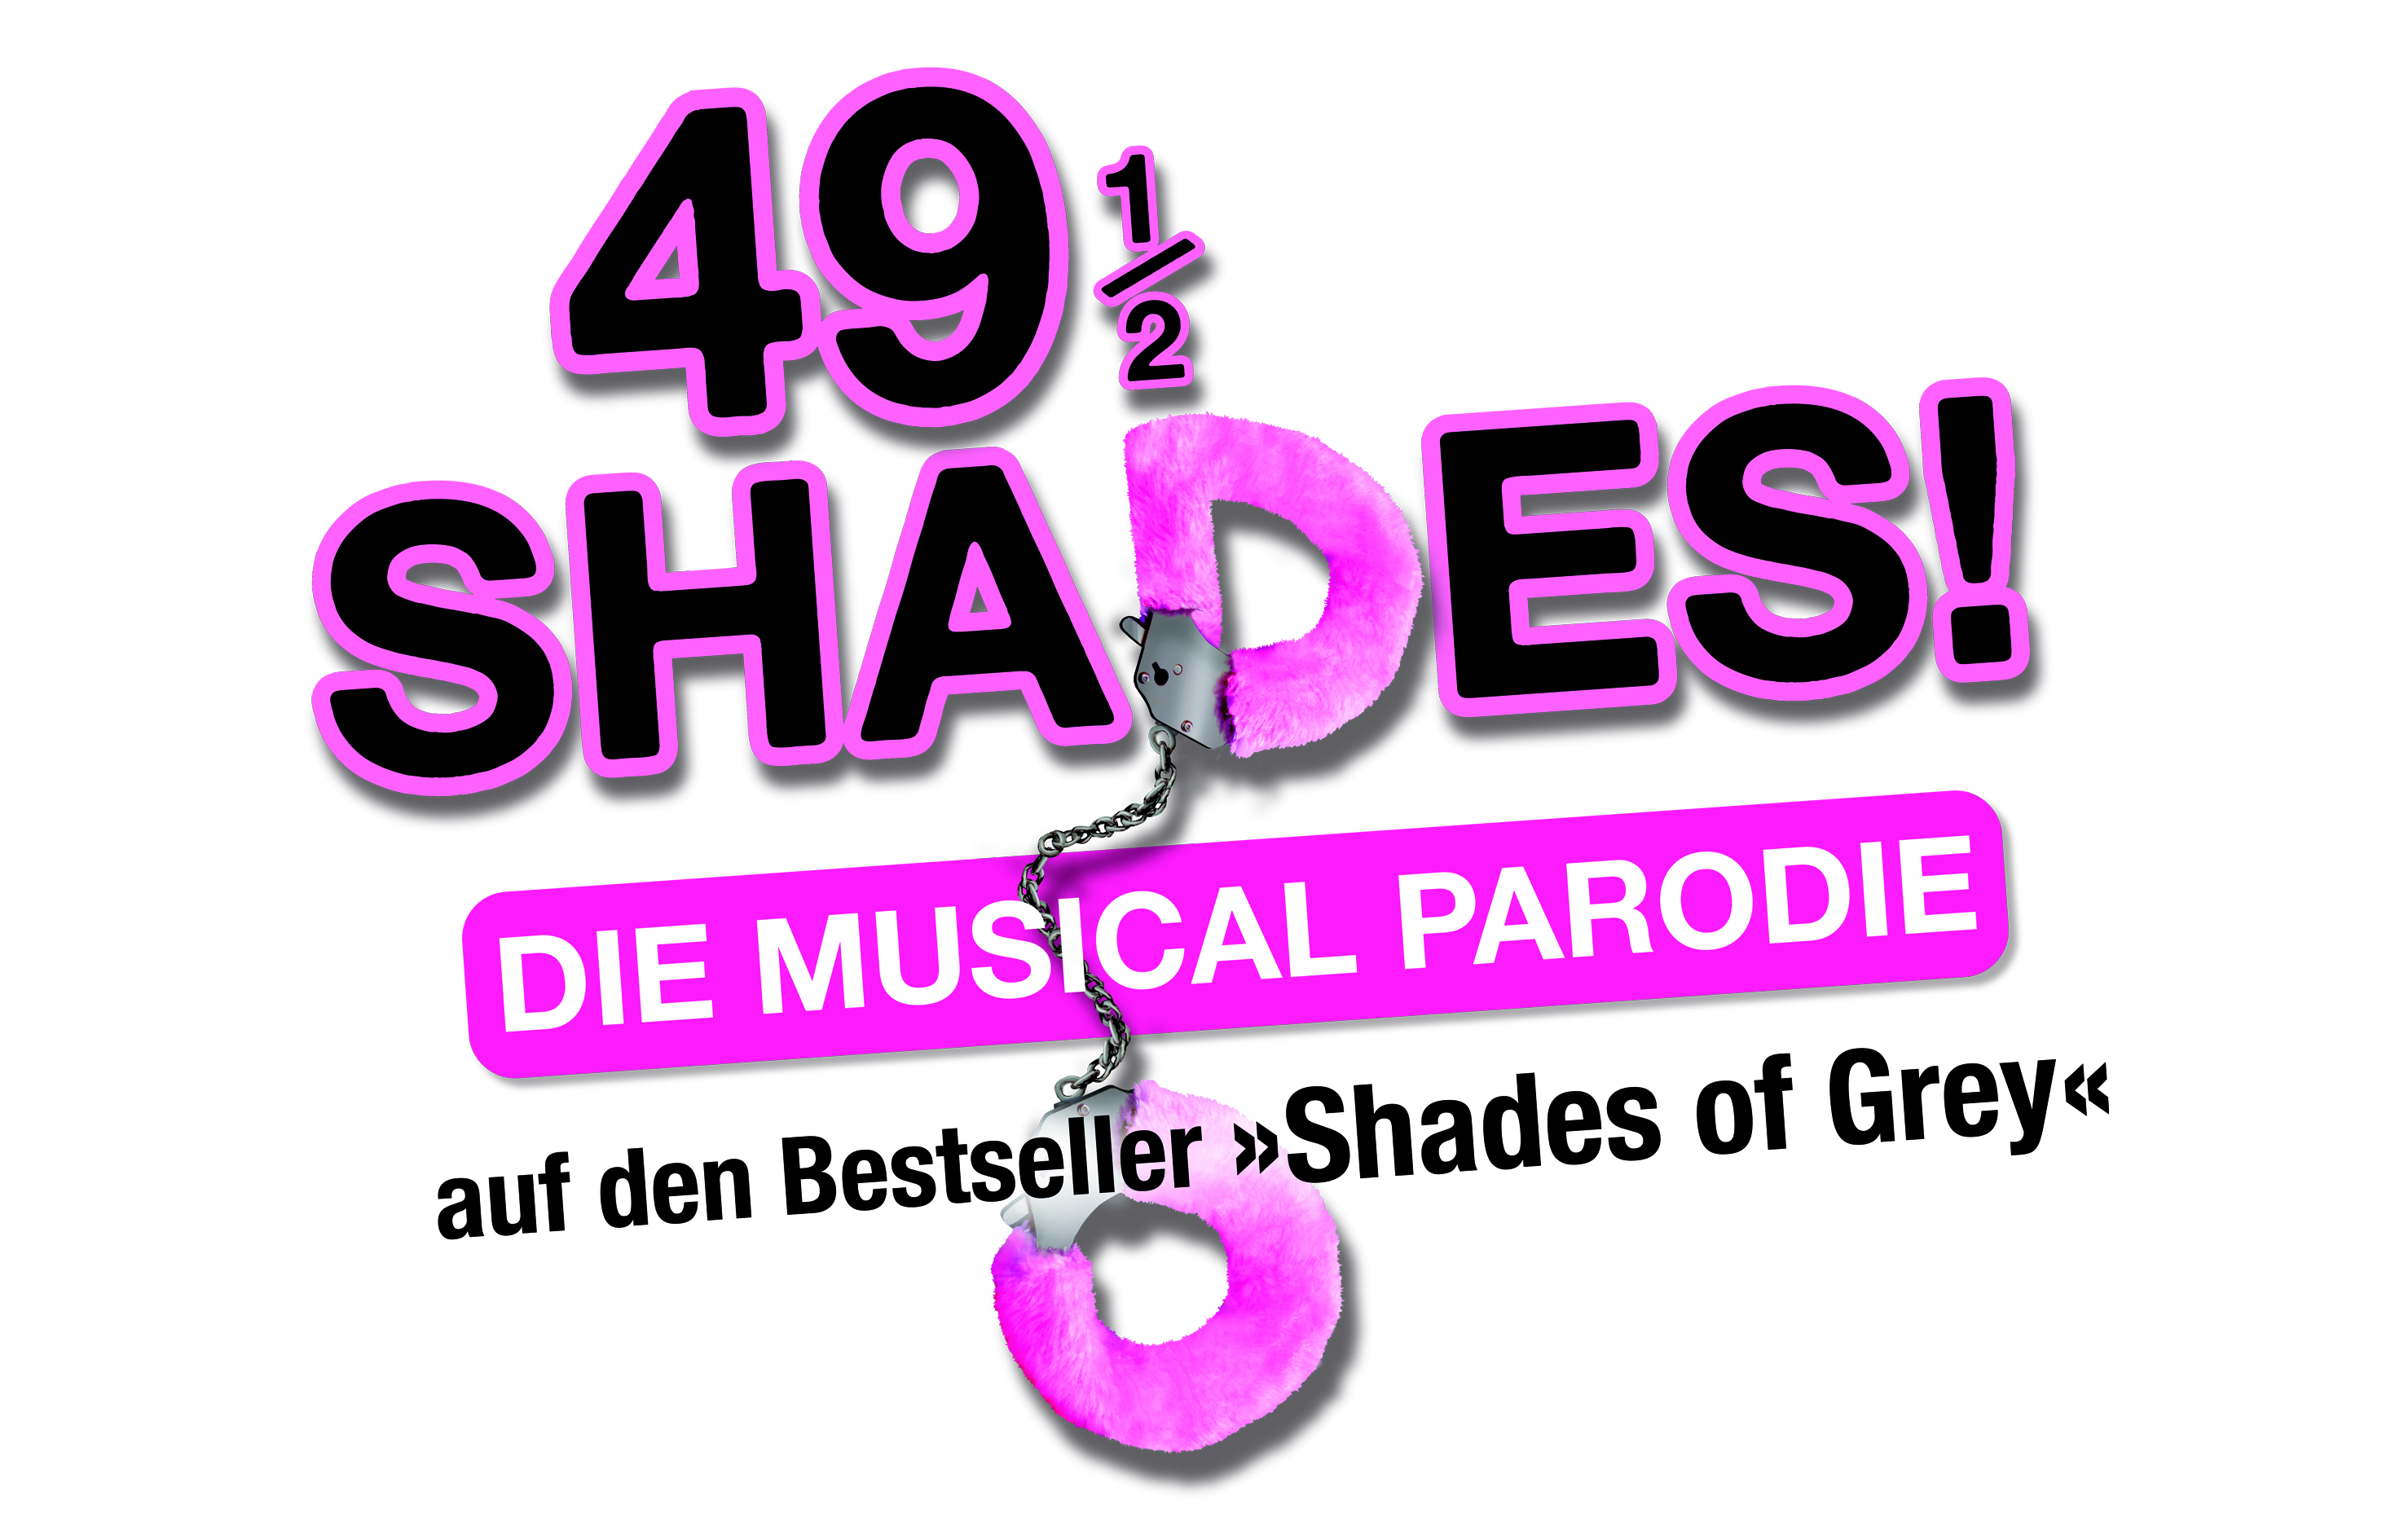 copyright_Mehr_Entertainment_Logo_49_1_2_SHADES_Die Musicalparodie